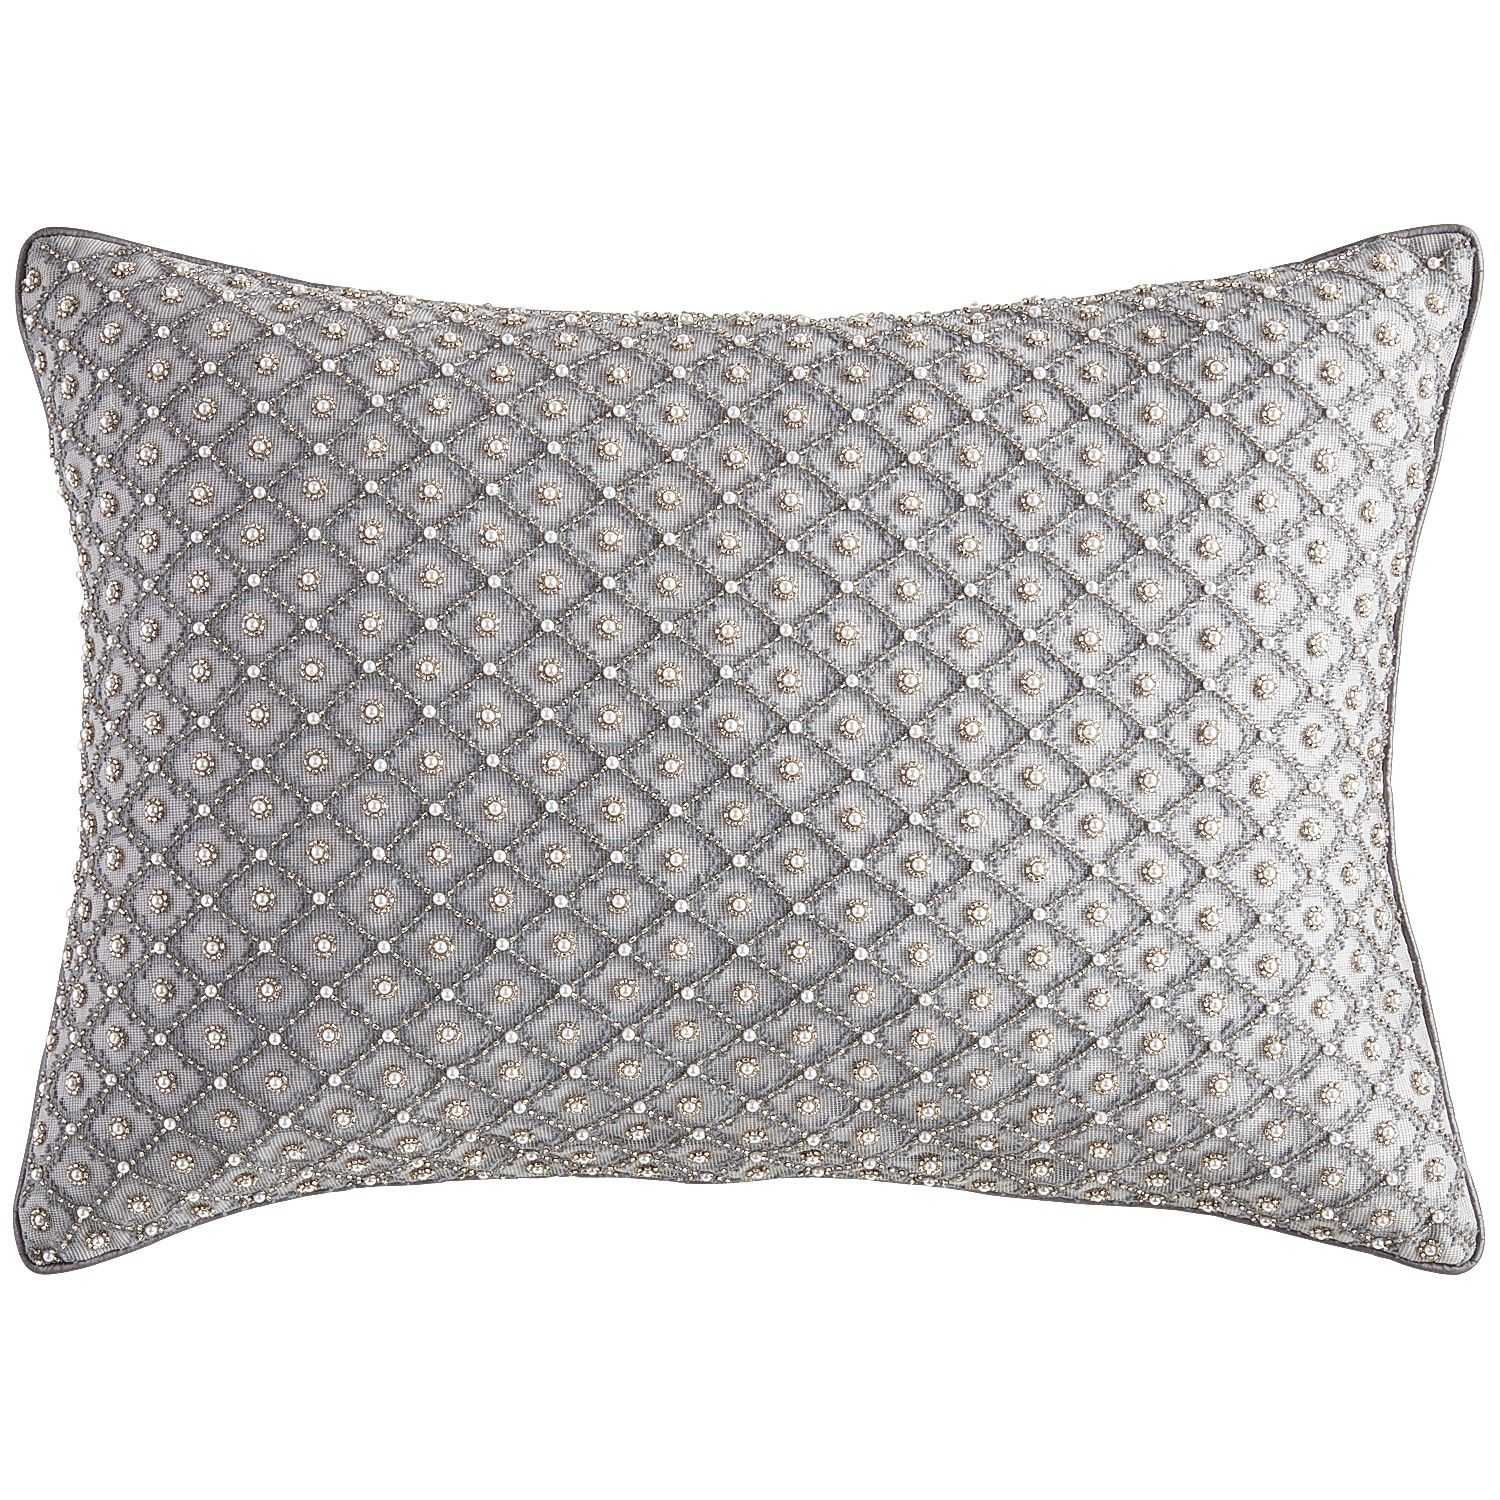 Silver French Fleur Beaded Lumbar Pillow Cotton Decor Throw  ~ How To Coordinate Throw Pillows For Sofa And Chairs